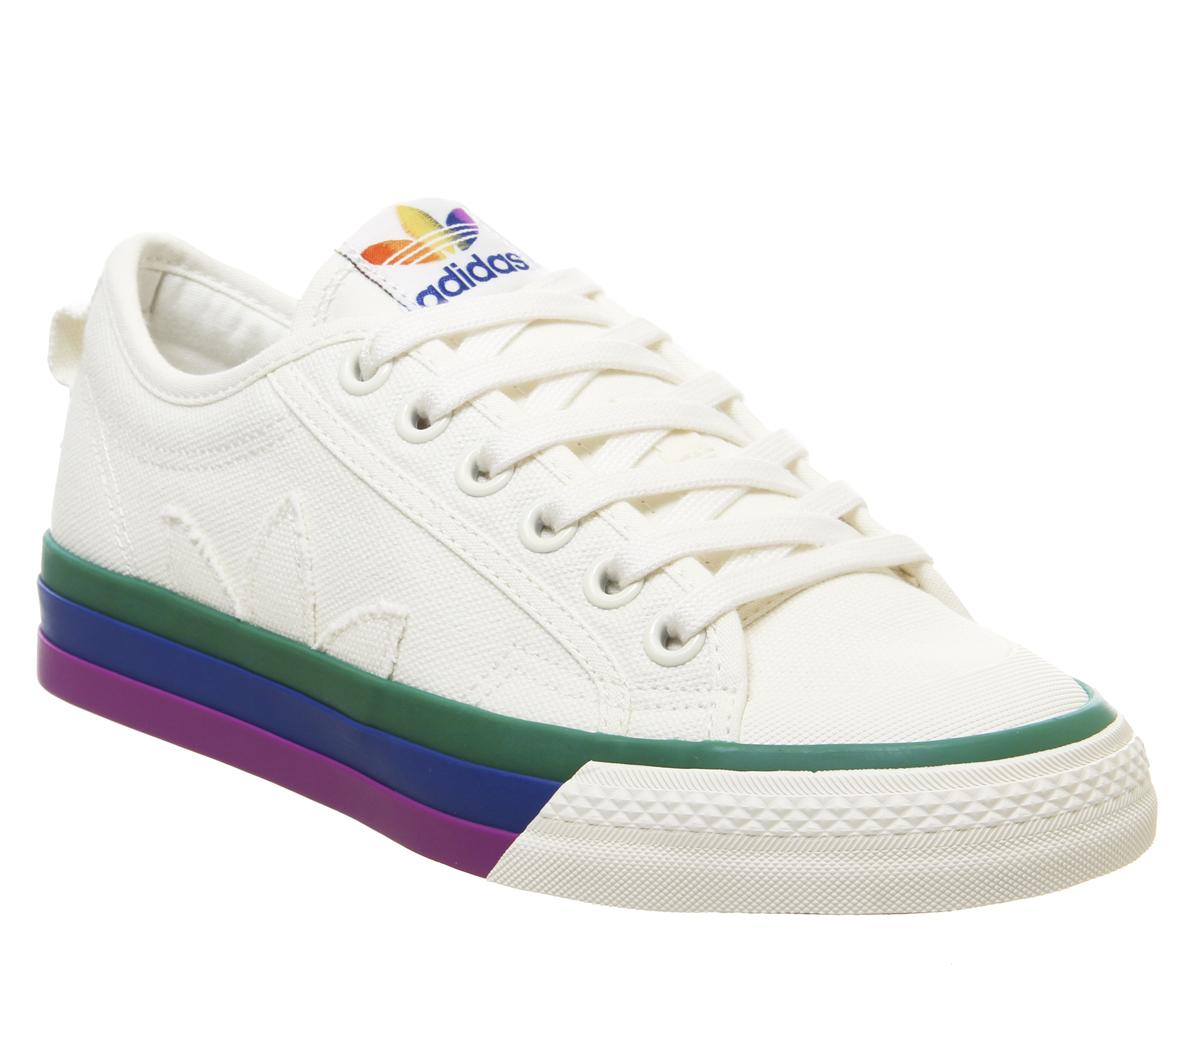 adidas Nizza Trainers Off White Pride - Sneaker damen